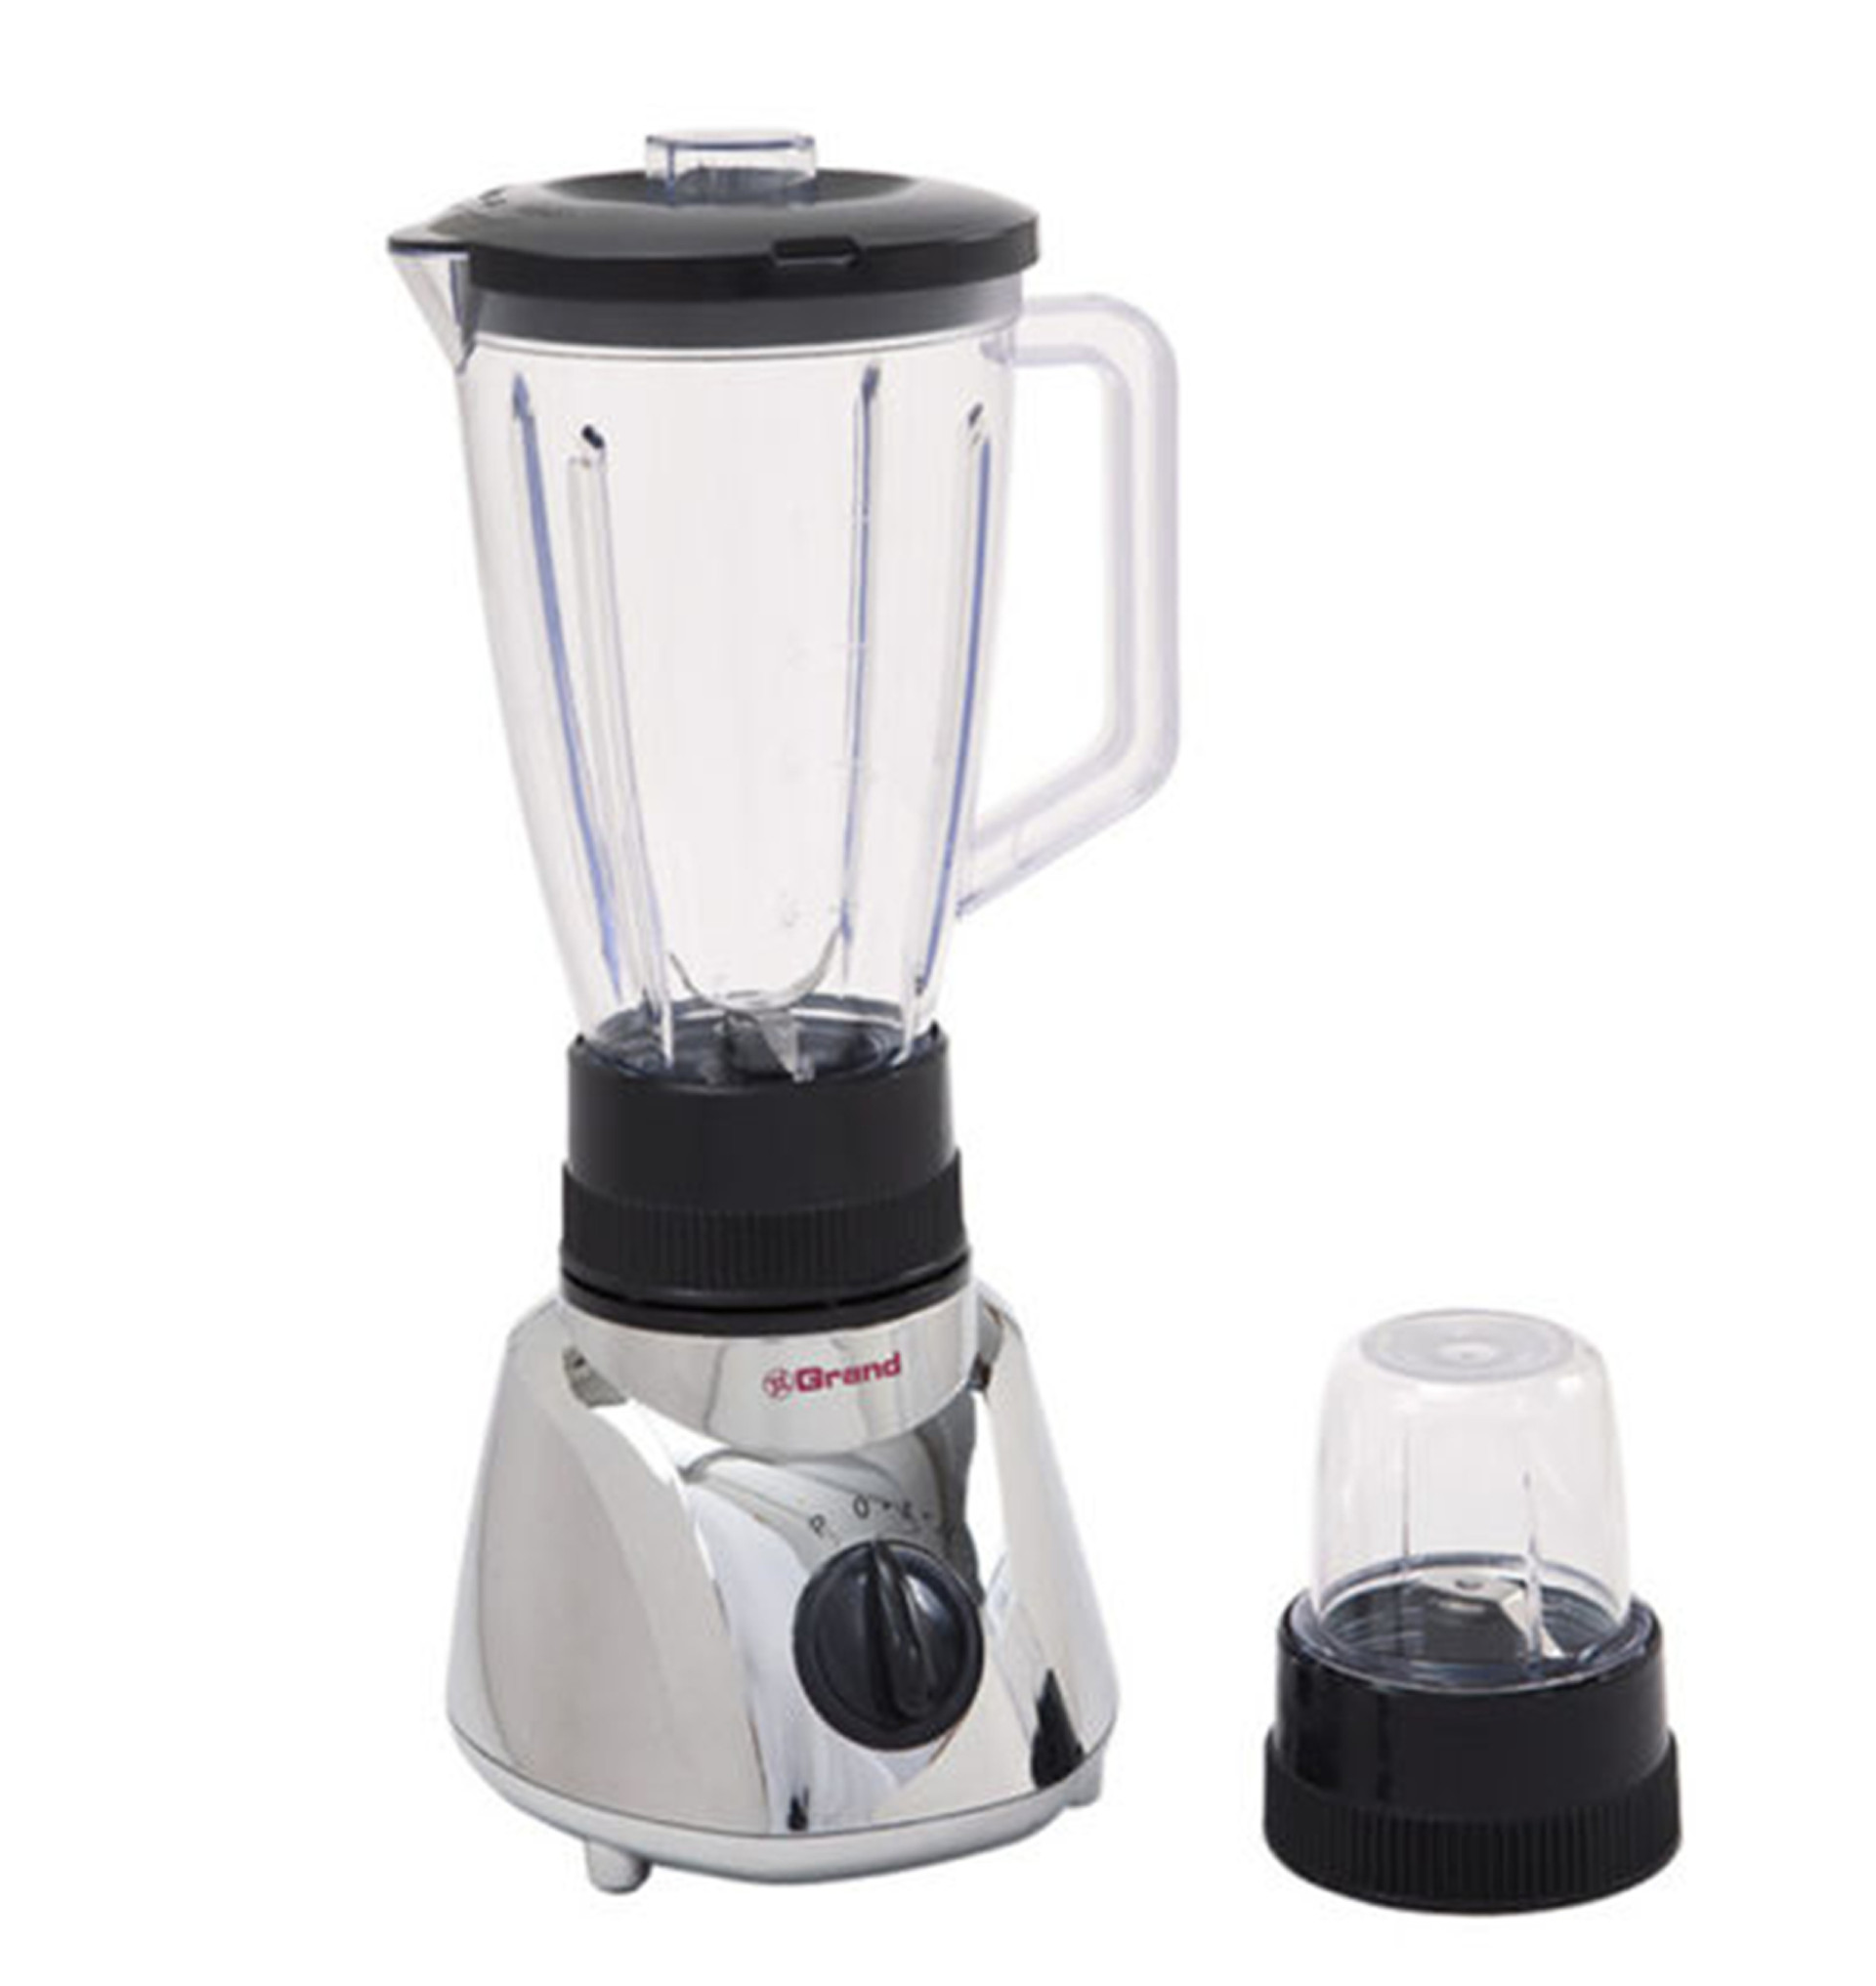 1600ml Electroplated Body Blender Mill 2 in 1 Kd-313b